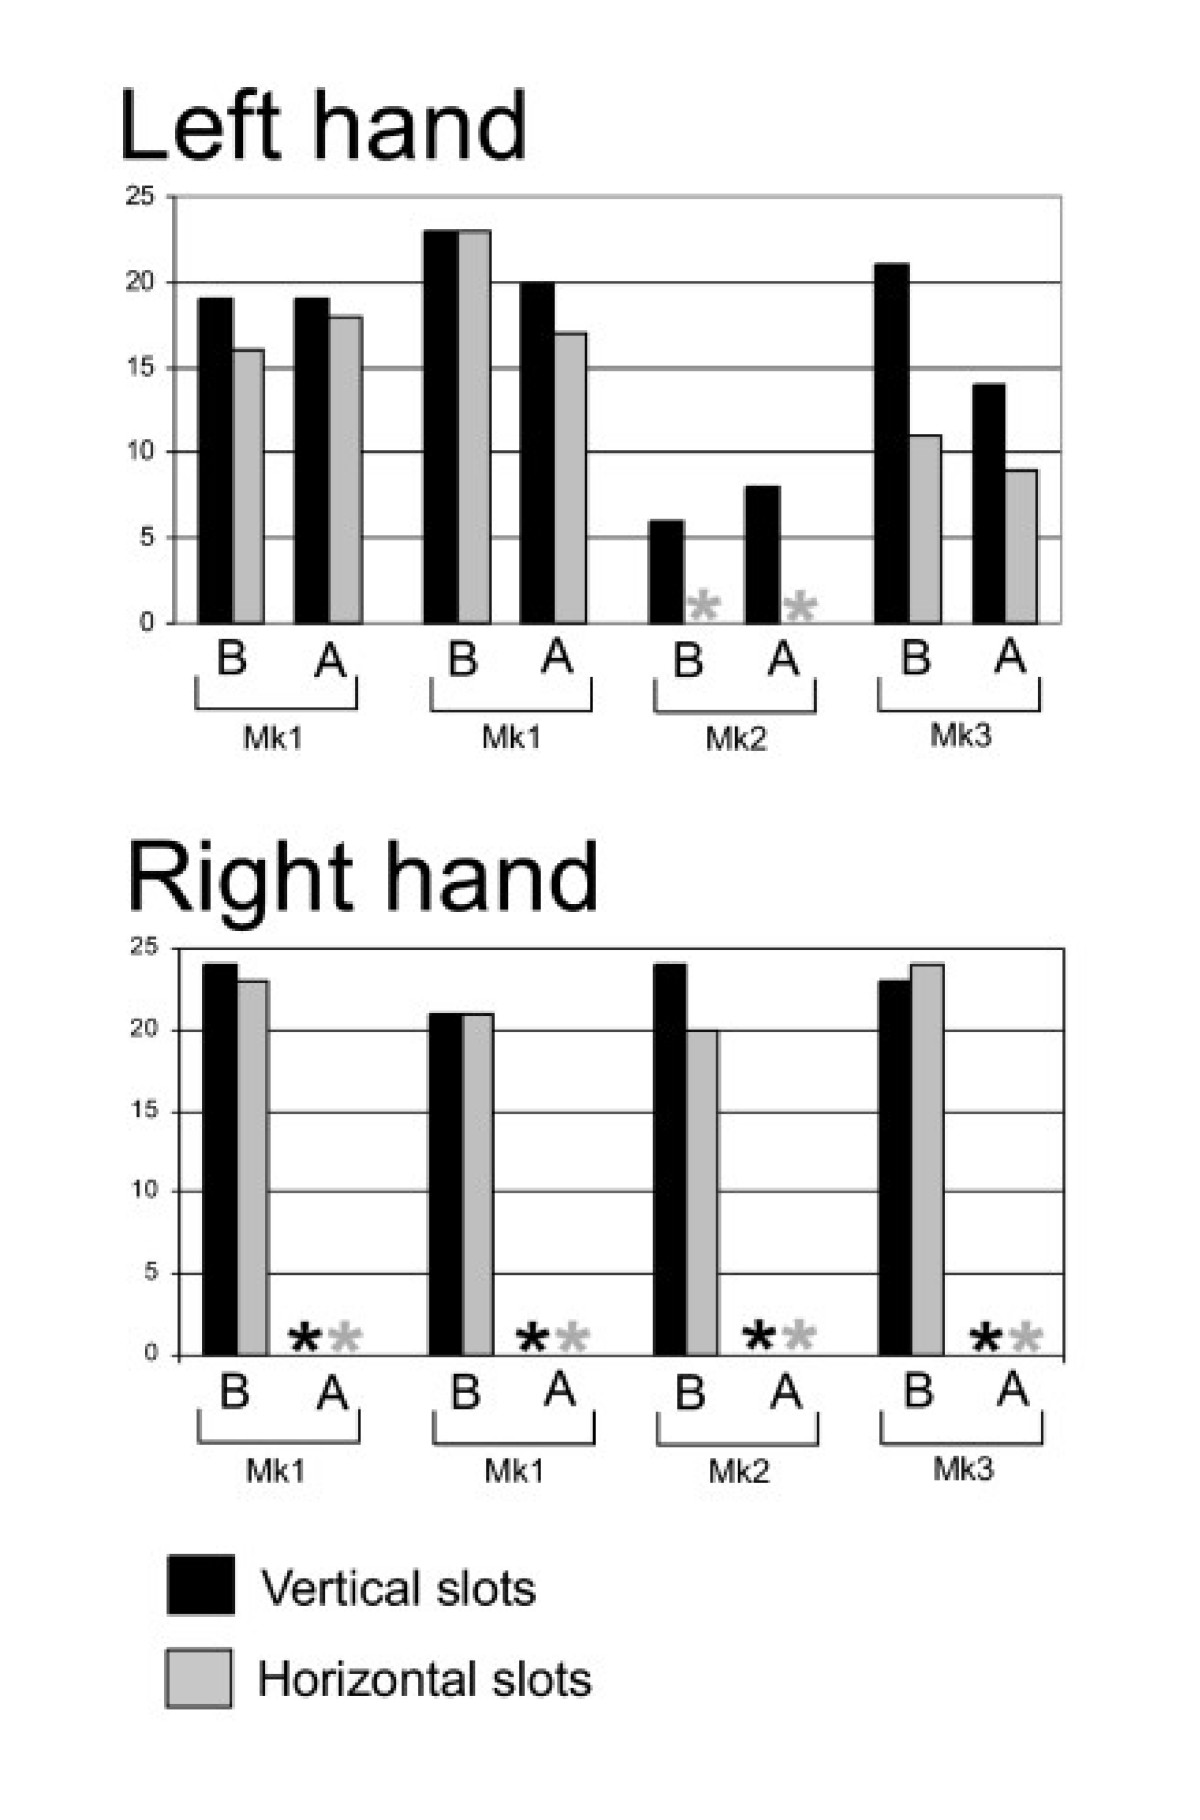 https://static-content.springer.com/image/art%3A10.1186%2F1471-2202-6-56/MediaObjects/12868_2005_Article_190_Fig6_HTML.jpg